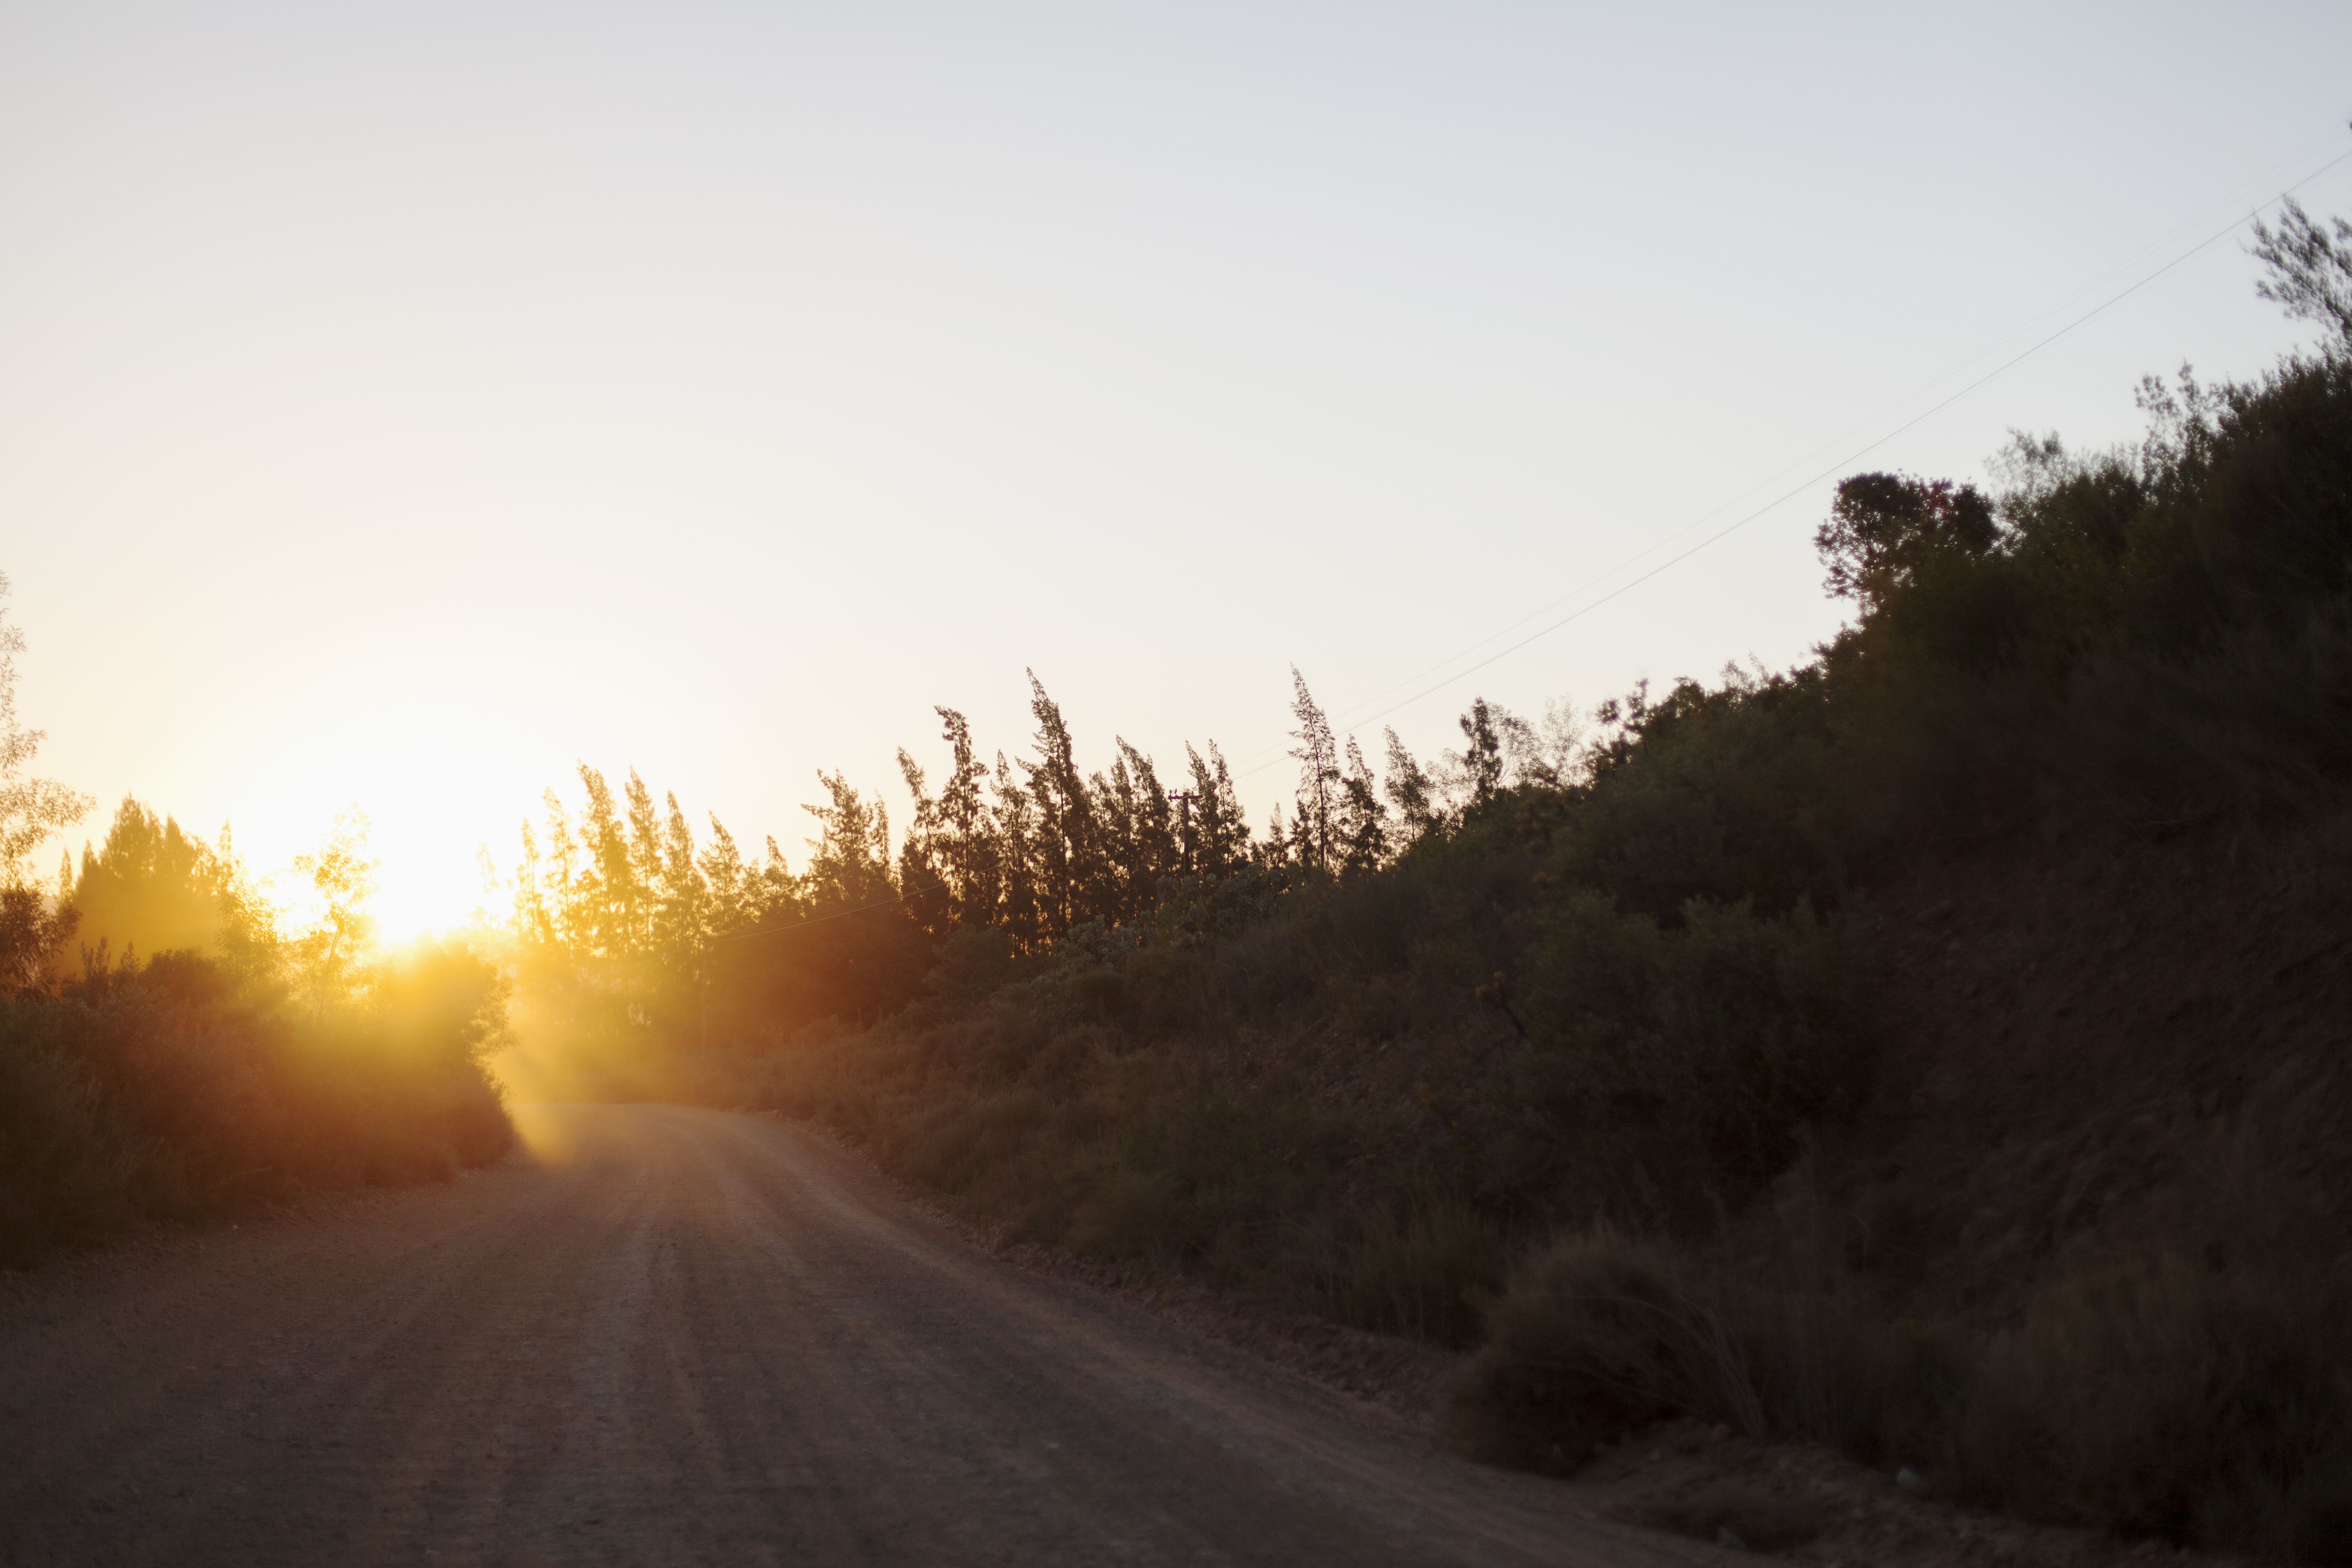 Gravel road in country with sunset